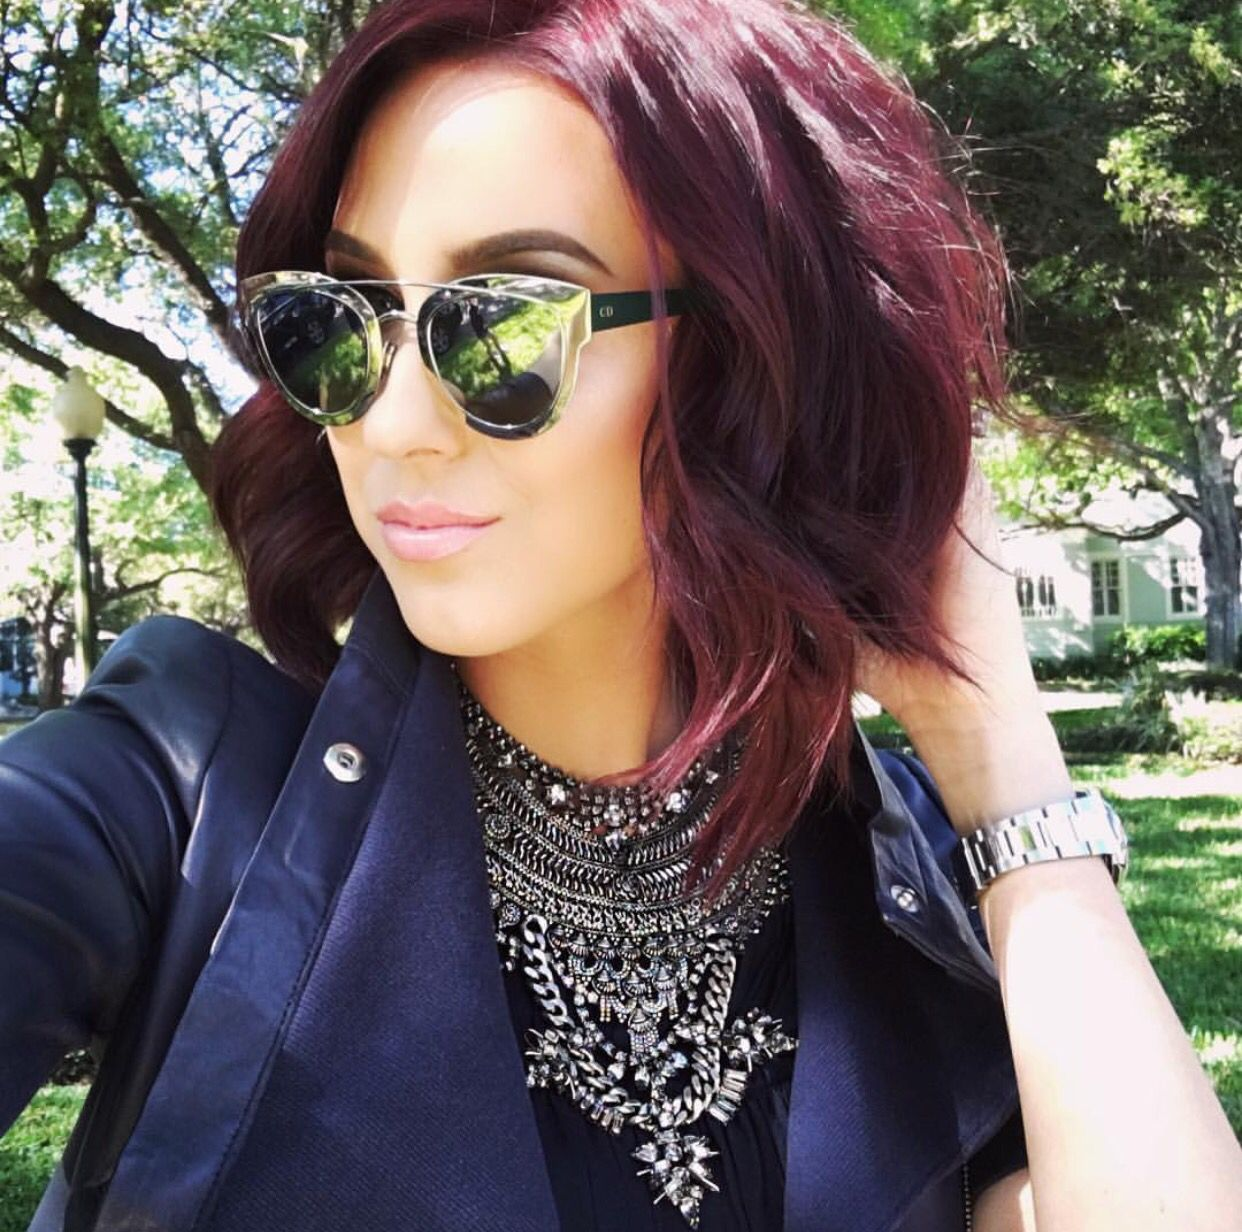 Ium obsessed with this hair color deep violet hairstyles